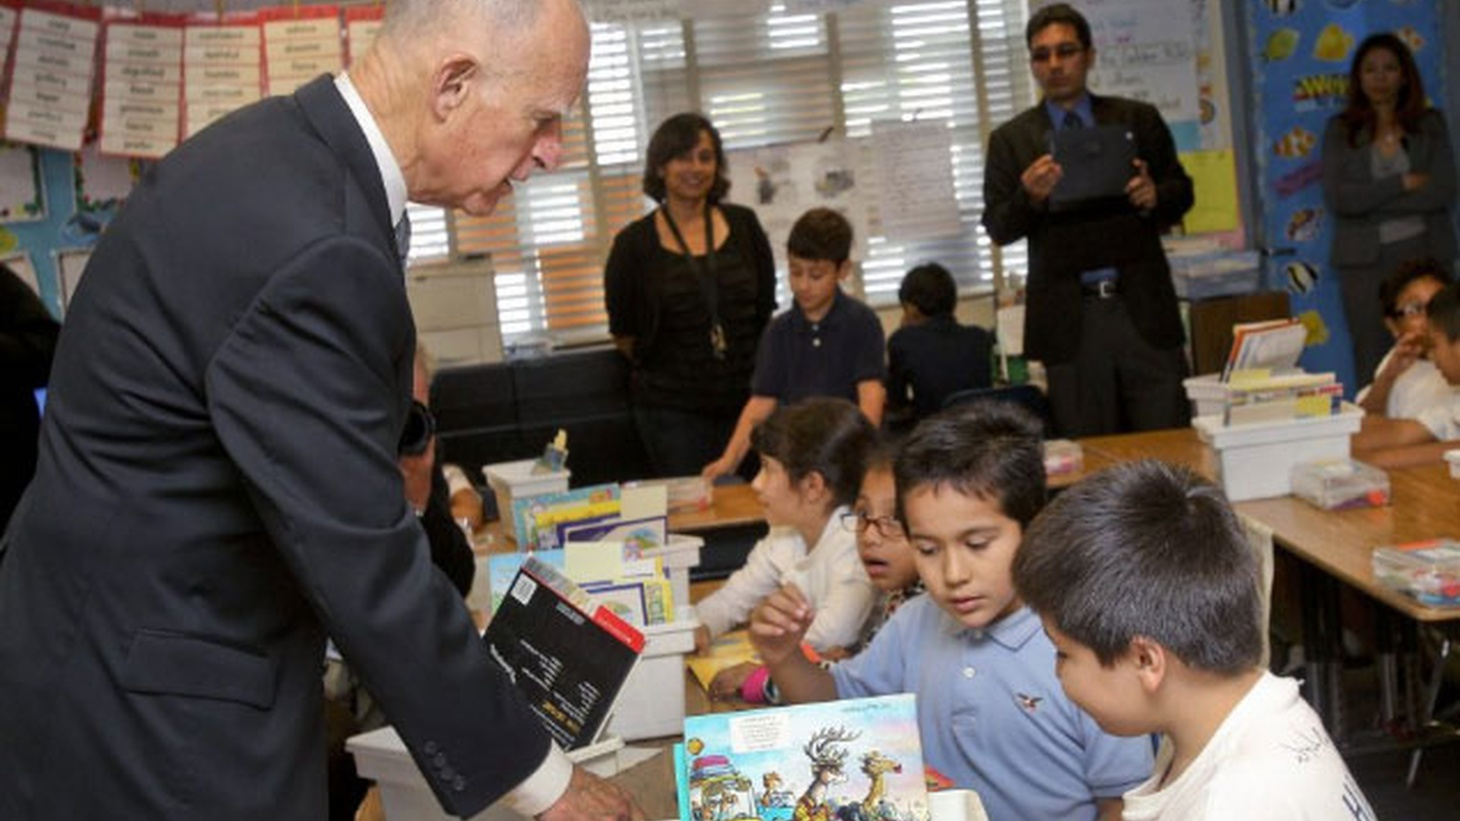 California's new education accountability framework was designed to help the state's neediest students. But Zocalo's Joe Mathews says the plan is made of up of disparate parts that don't fit together, and the result in an incoherent mess.